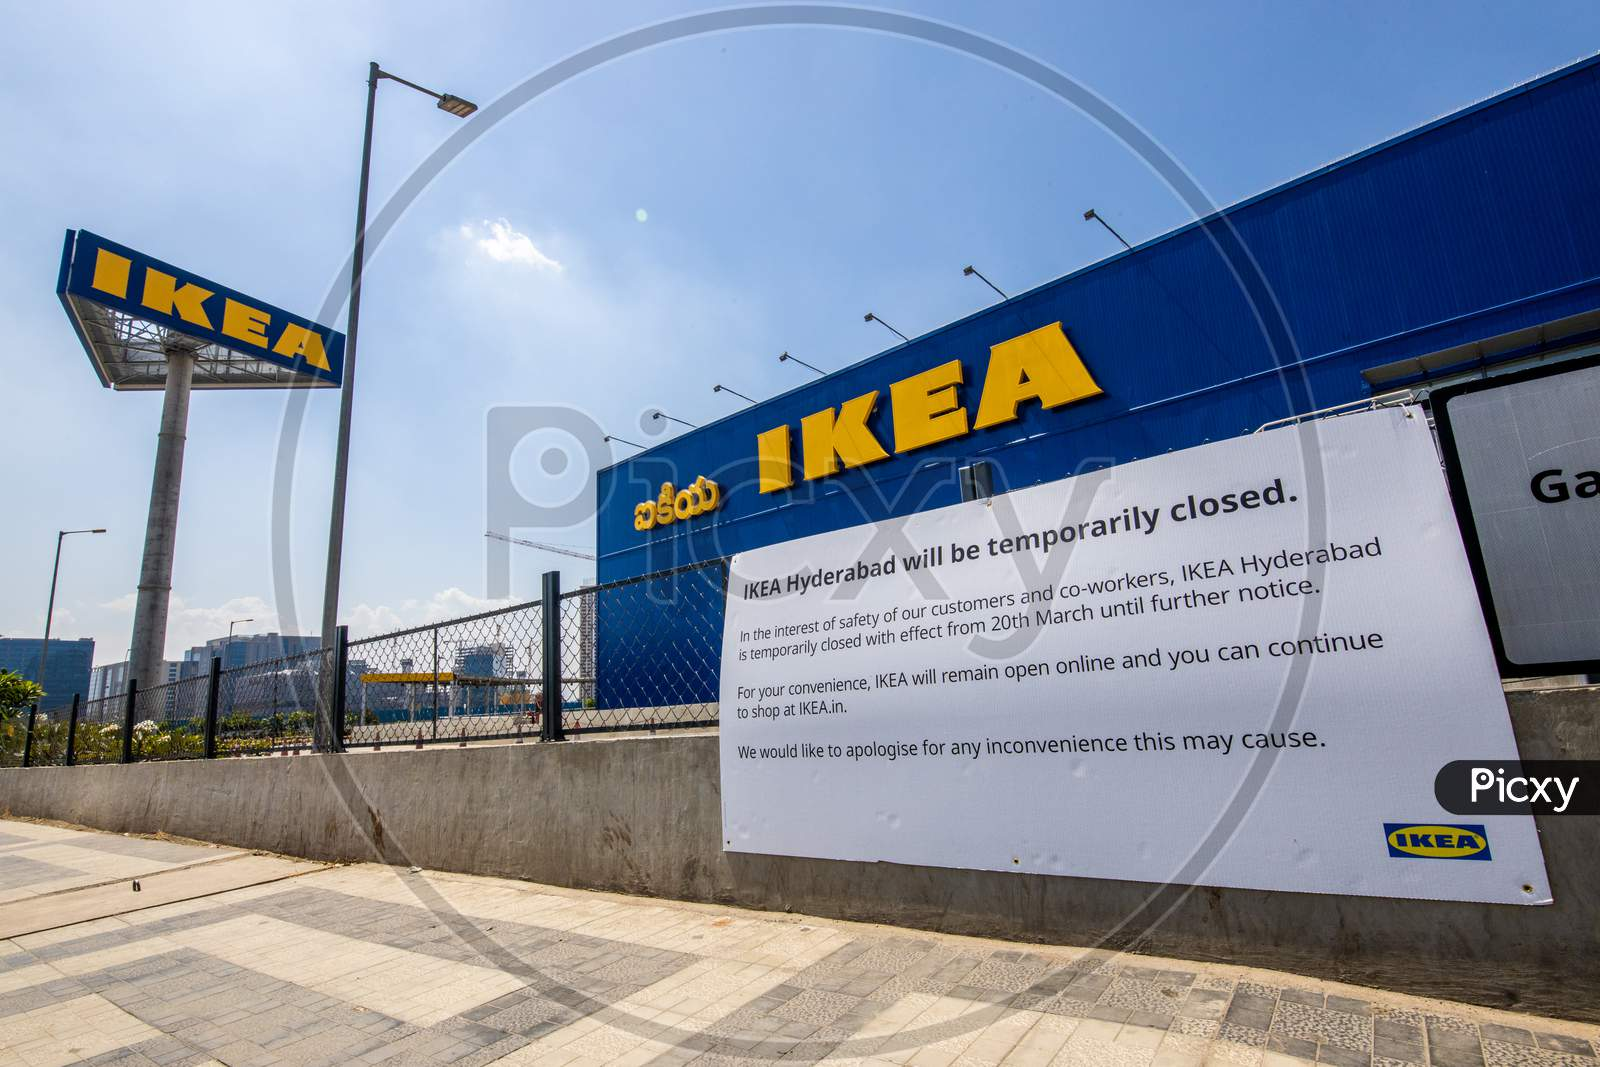 Janata Curfew, Deserted Roads At IKEA   in Hyderabad  As Indian Prime Minister Narendra Modi Called For a 14 Hour Janta  Curfew Or Self-imposed  Quarantine To Break The  Highly Contagious  COVID 19 Or Corona Virus Spread